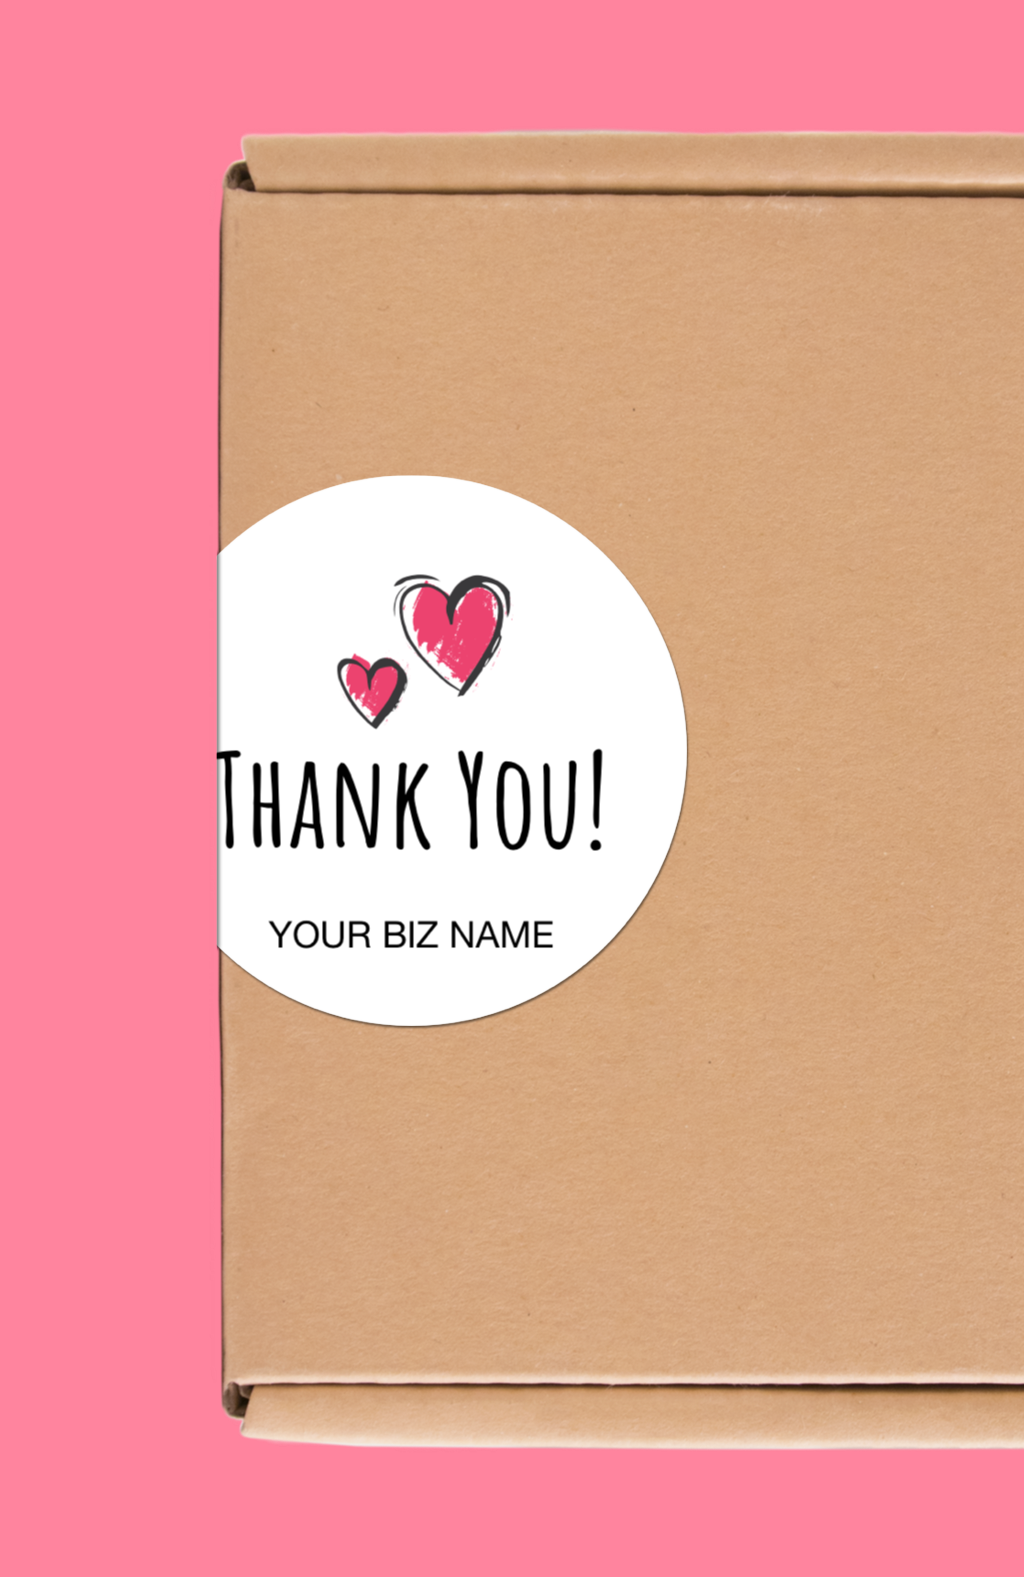 Thank you for your order sticker packaging labels business thank you round label poshmark thank you packaging labels craftycode etsyshop etsyseller